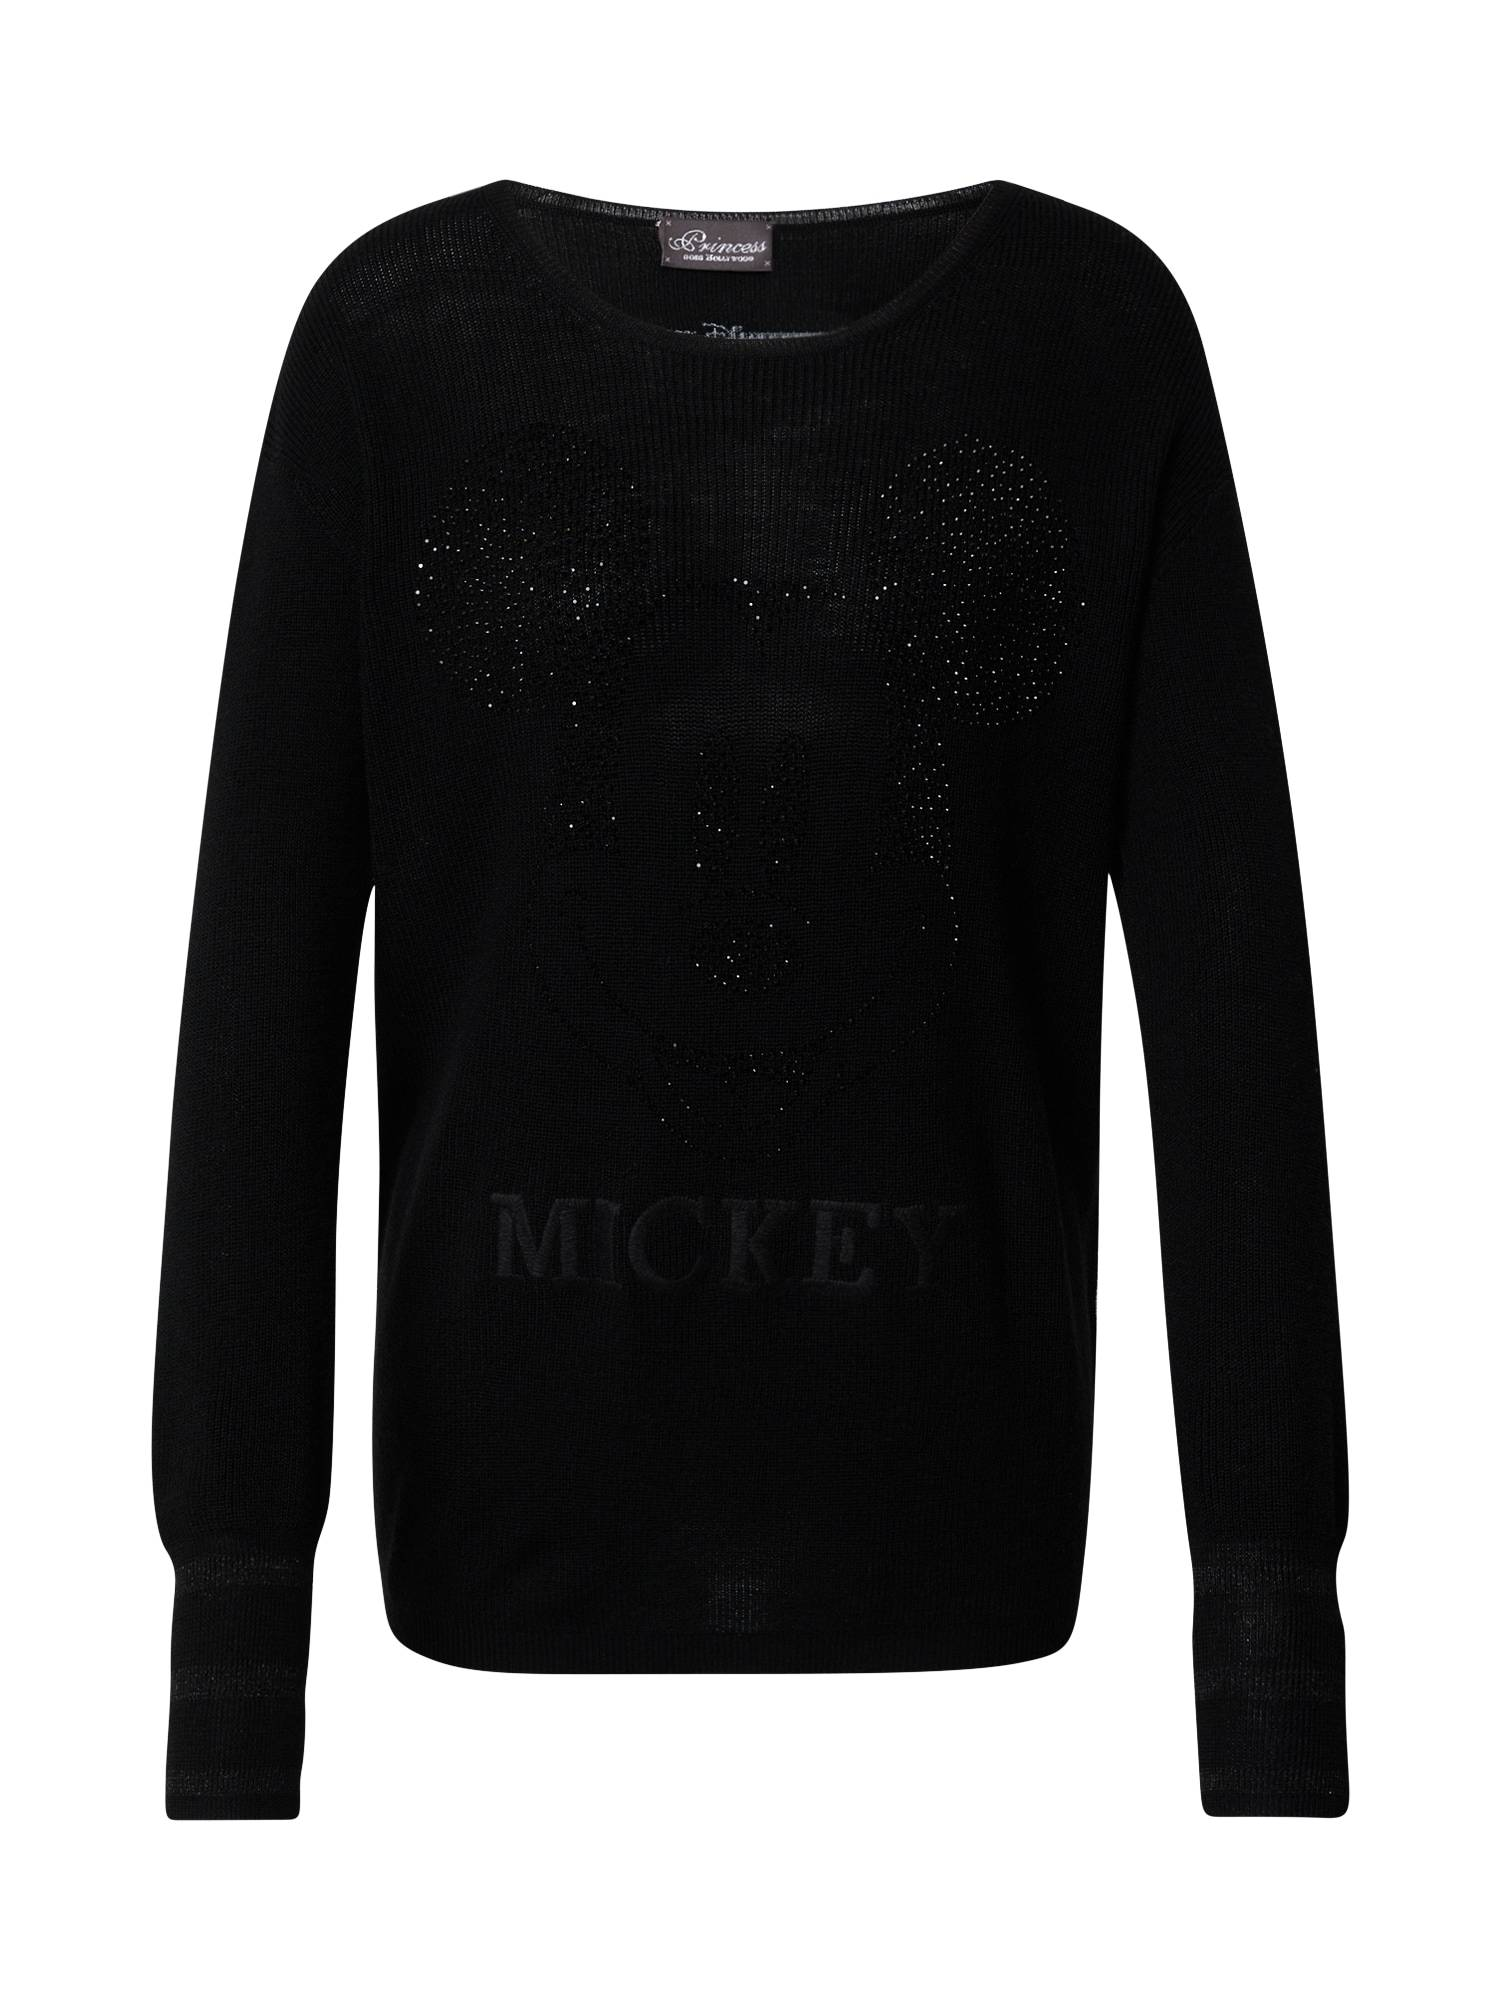 Princess Pull-over 'Mickey Deco'  - Noir - Taille: 34 - female